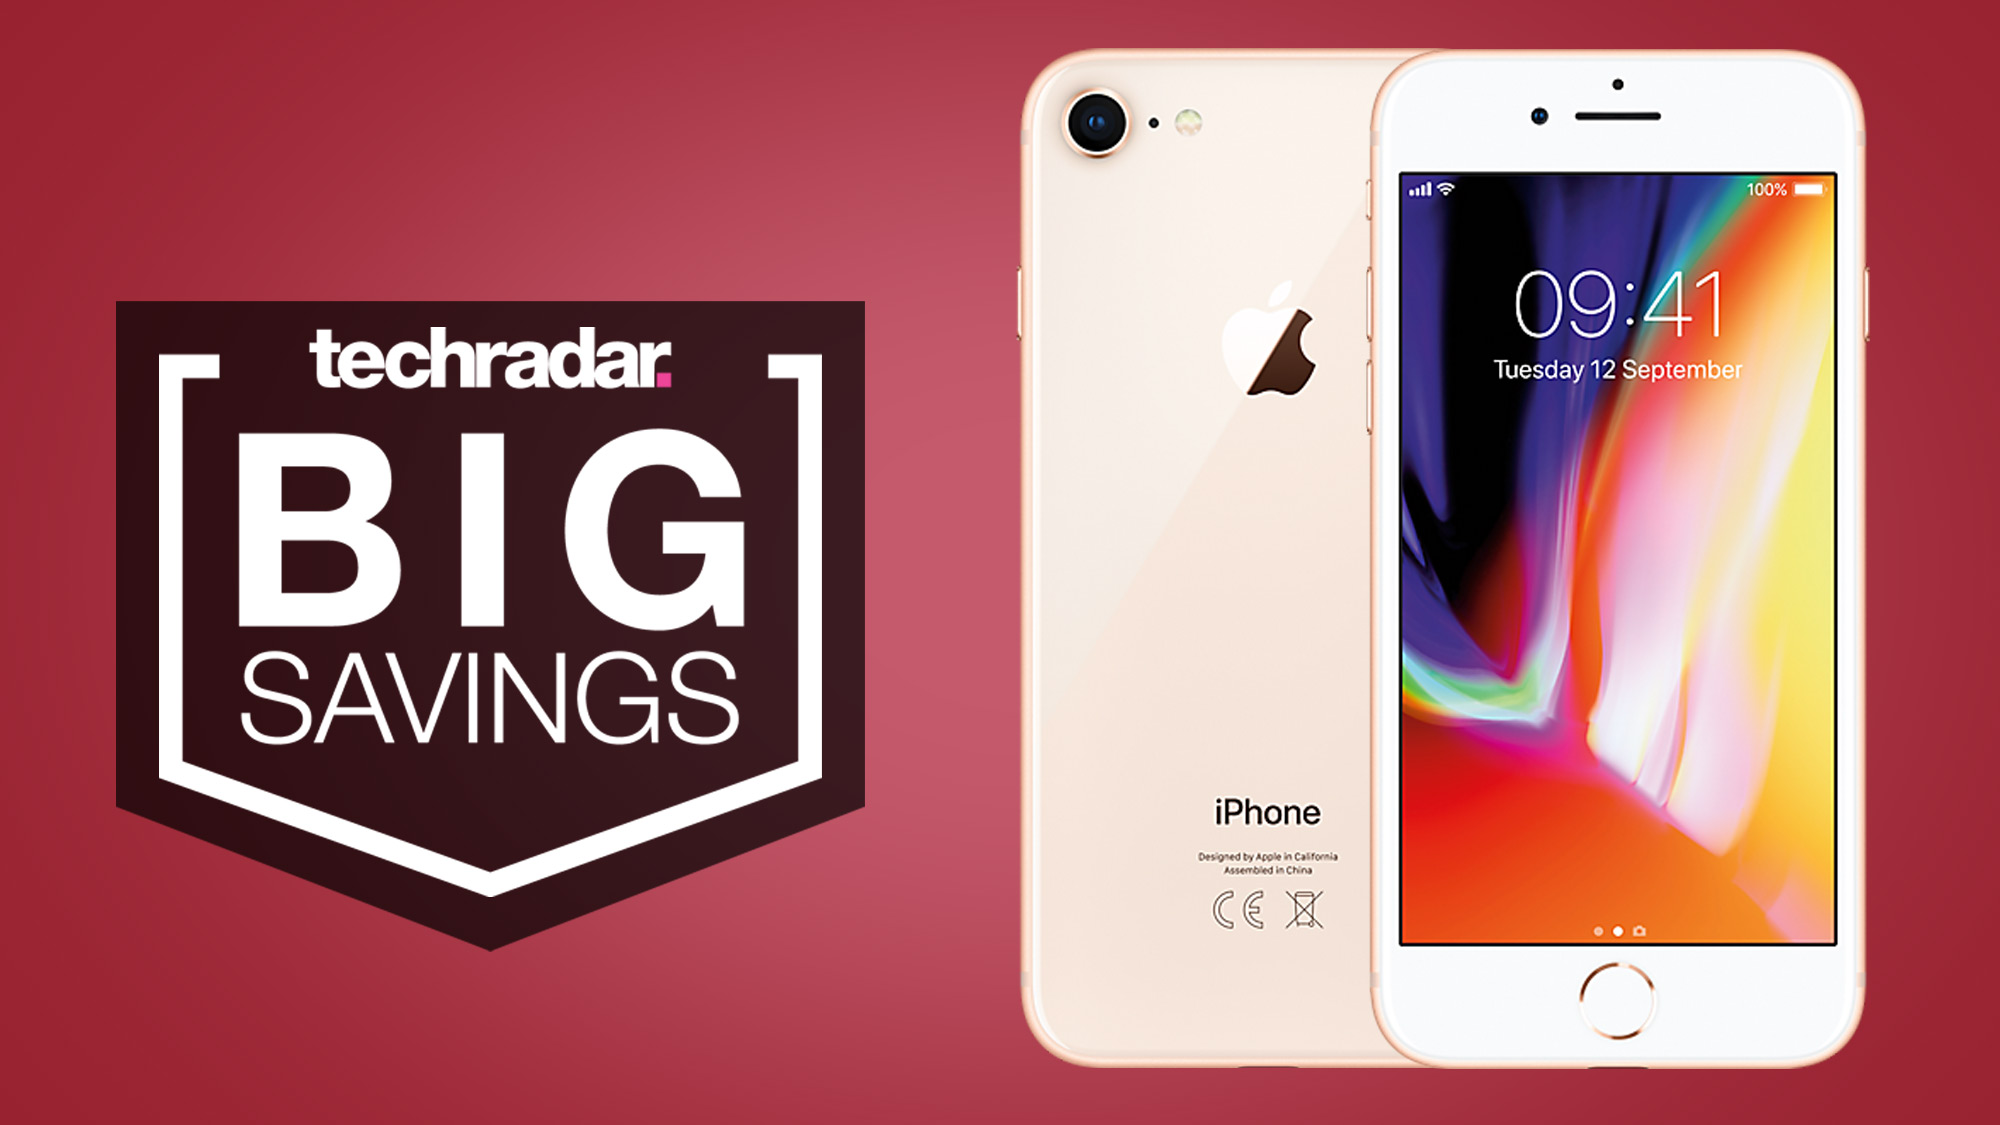 iPhone 8 deals look like the perfect cheap iPhone right now with prices from £20/pm